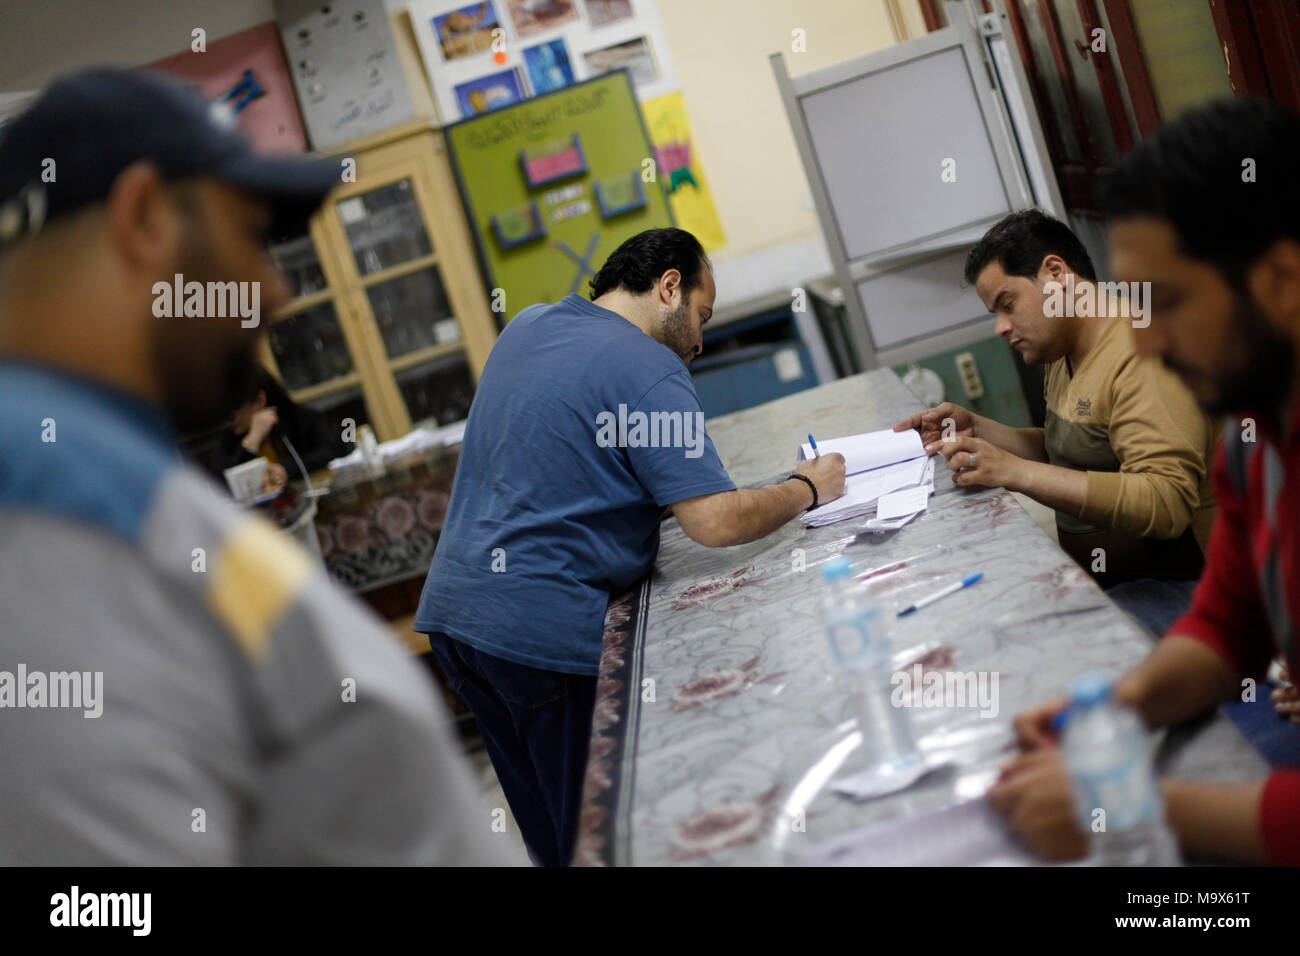 (180328) -- CAIRO, March 28, 2018 (Xinhua) -- A man registers at a polling station in Cairo, Egypt, on March 28, 2018. The third and final day of Egypt's 2018 presidential election kicked off on Wednesday at 9 a.m. Cairo local time (0700 GMT) amid calls for citizens to take part in the polls. (Xinhua/Ahmed Gomaa) - Stock Image